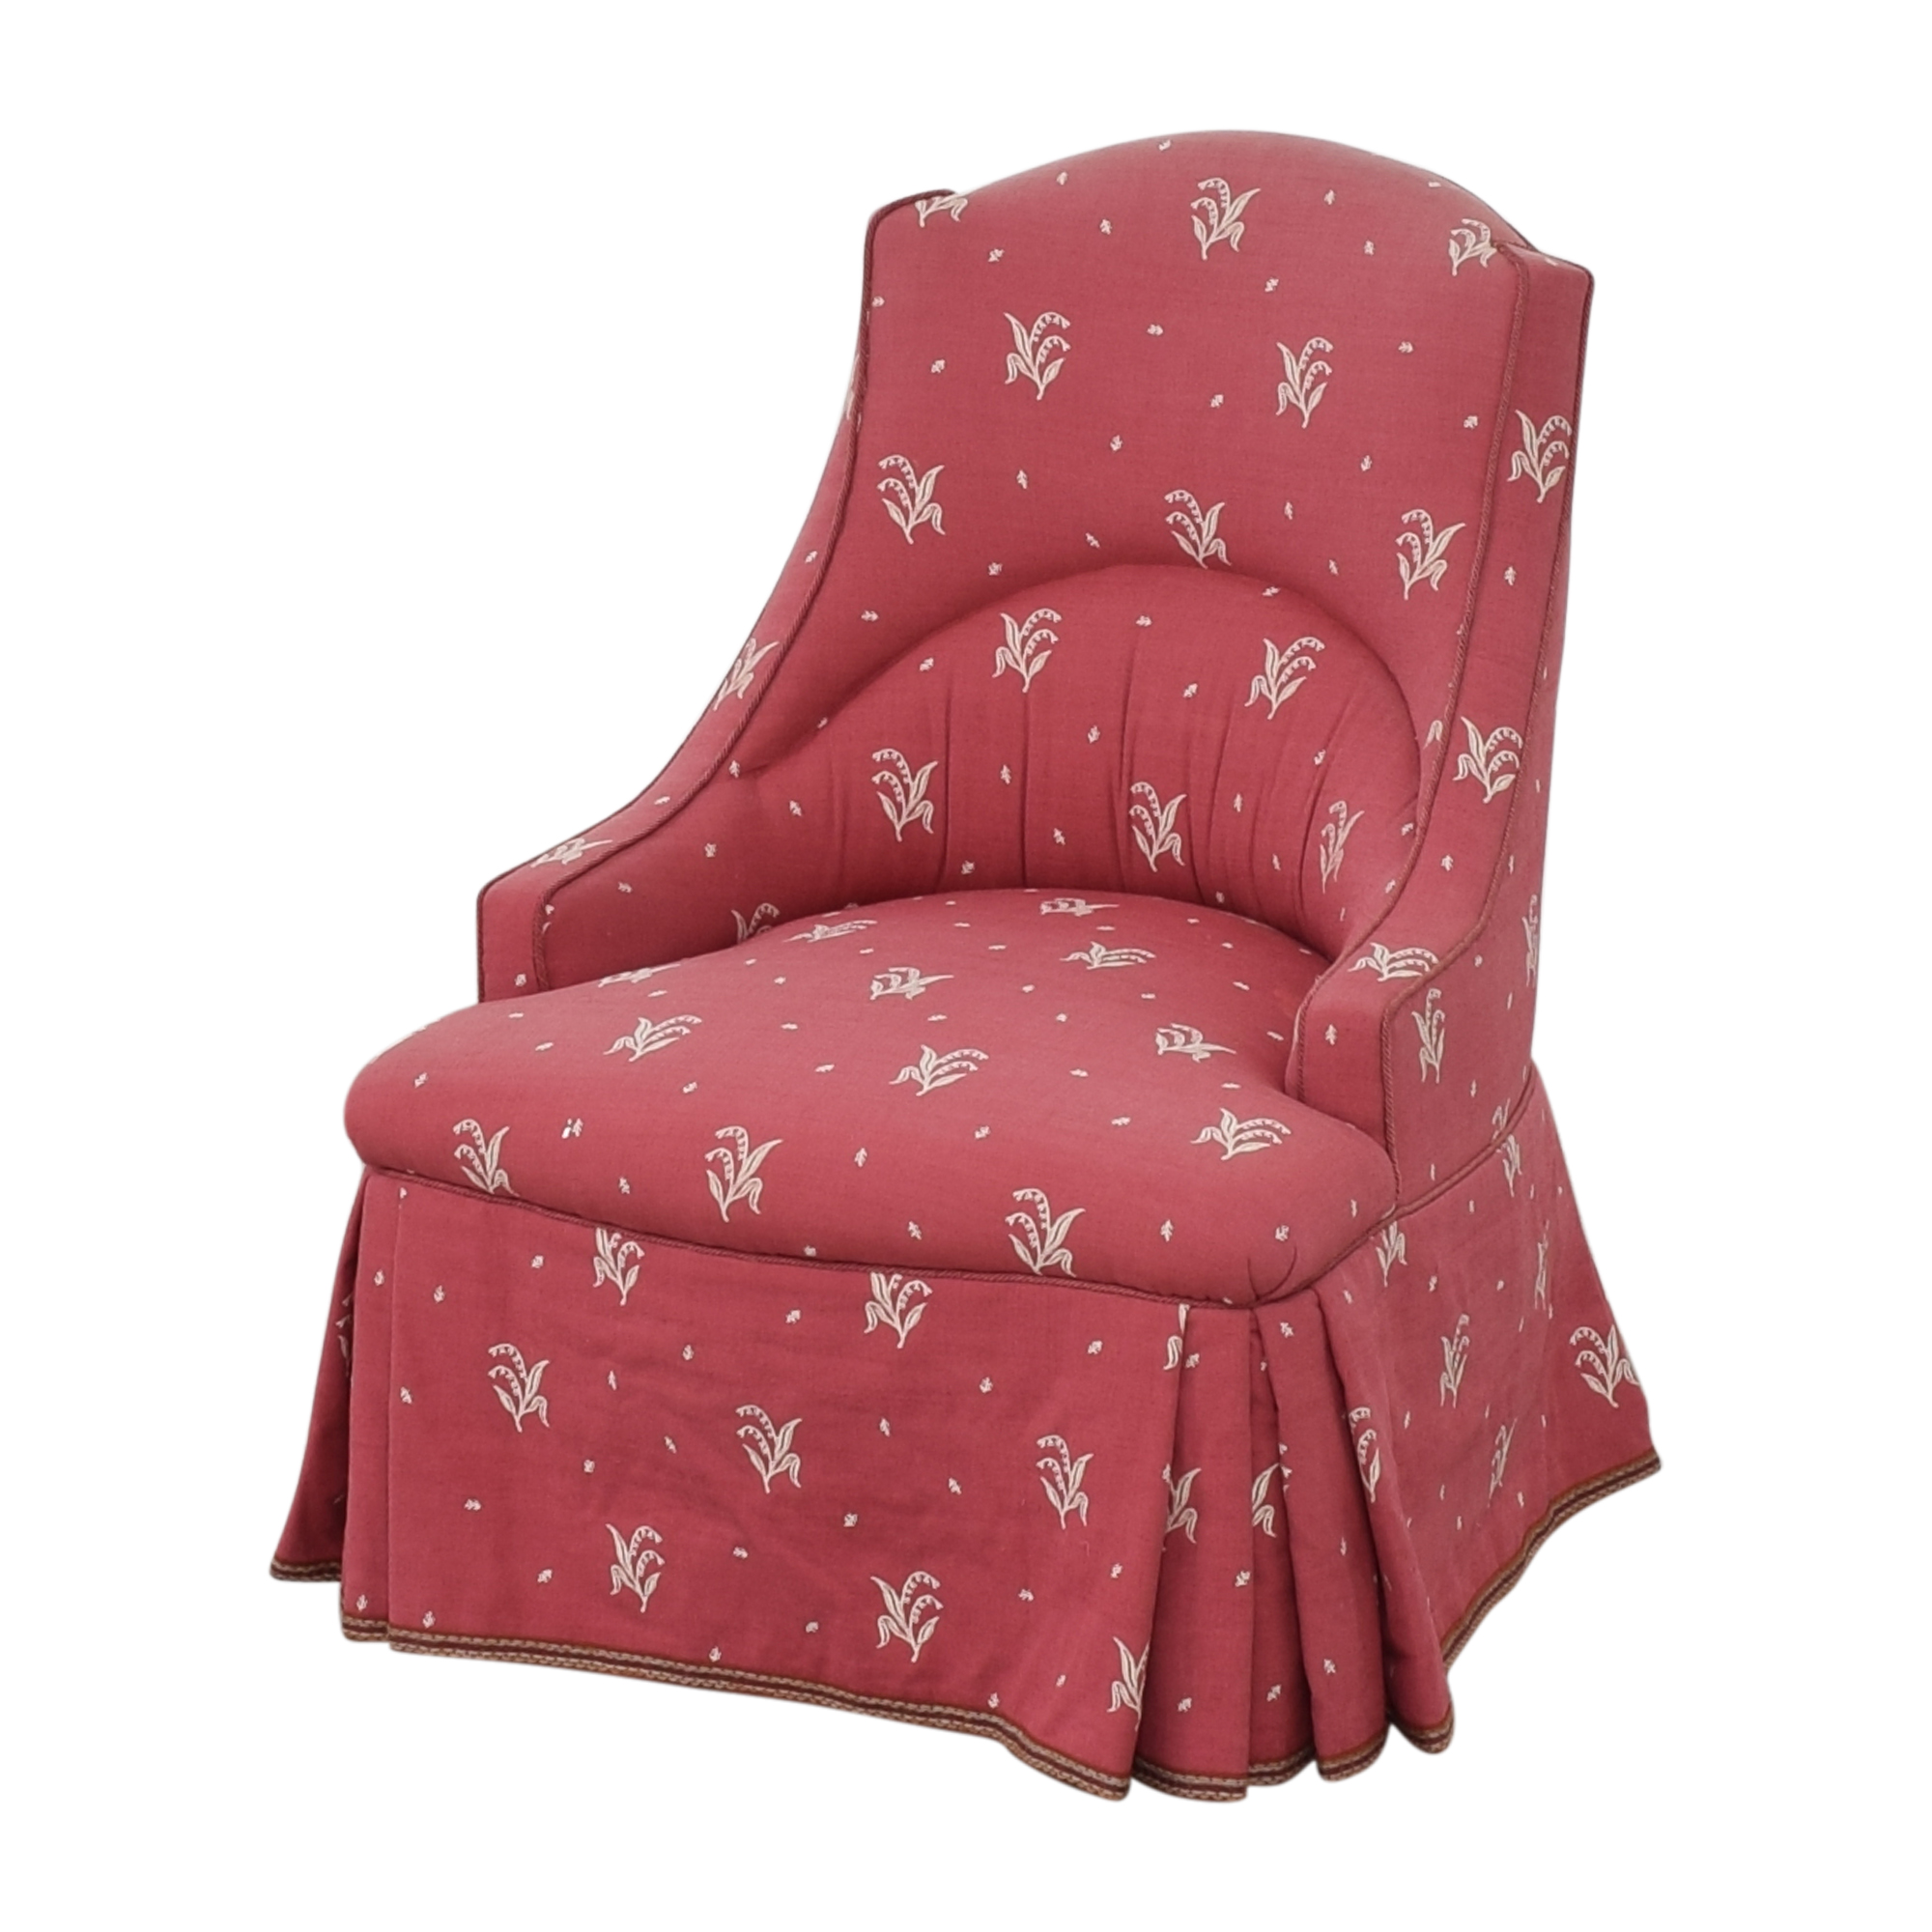 Patterned Skirted Slipper Chair nyc